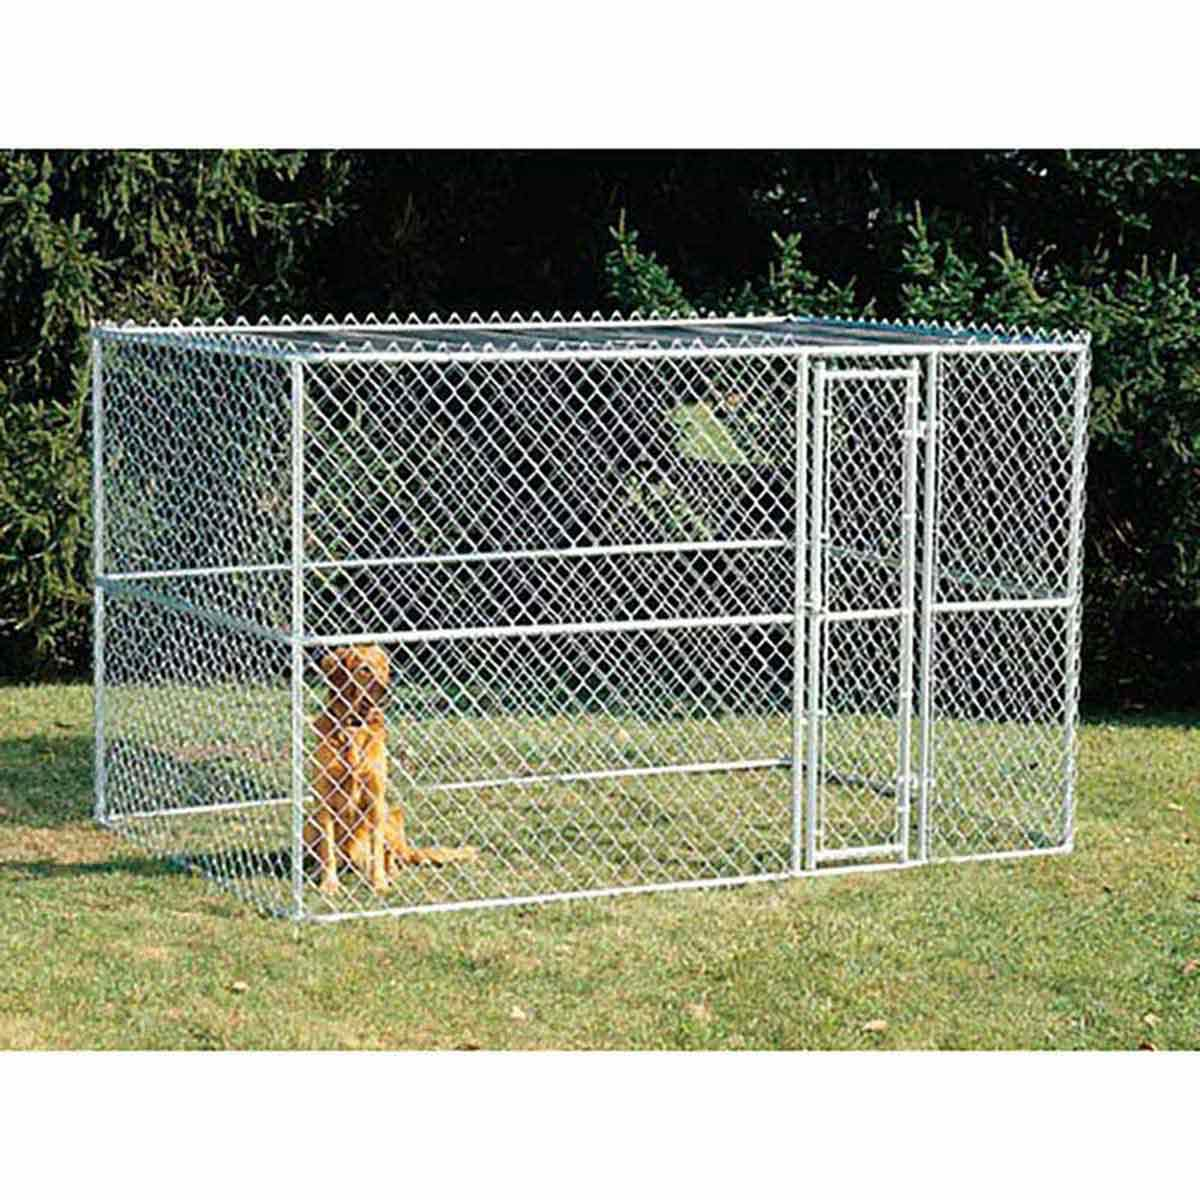 Midwest K9 Kennel for Dogs - 6 feet by 4 feet by 4 feet